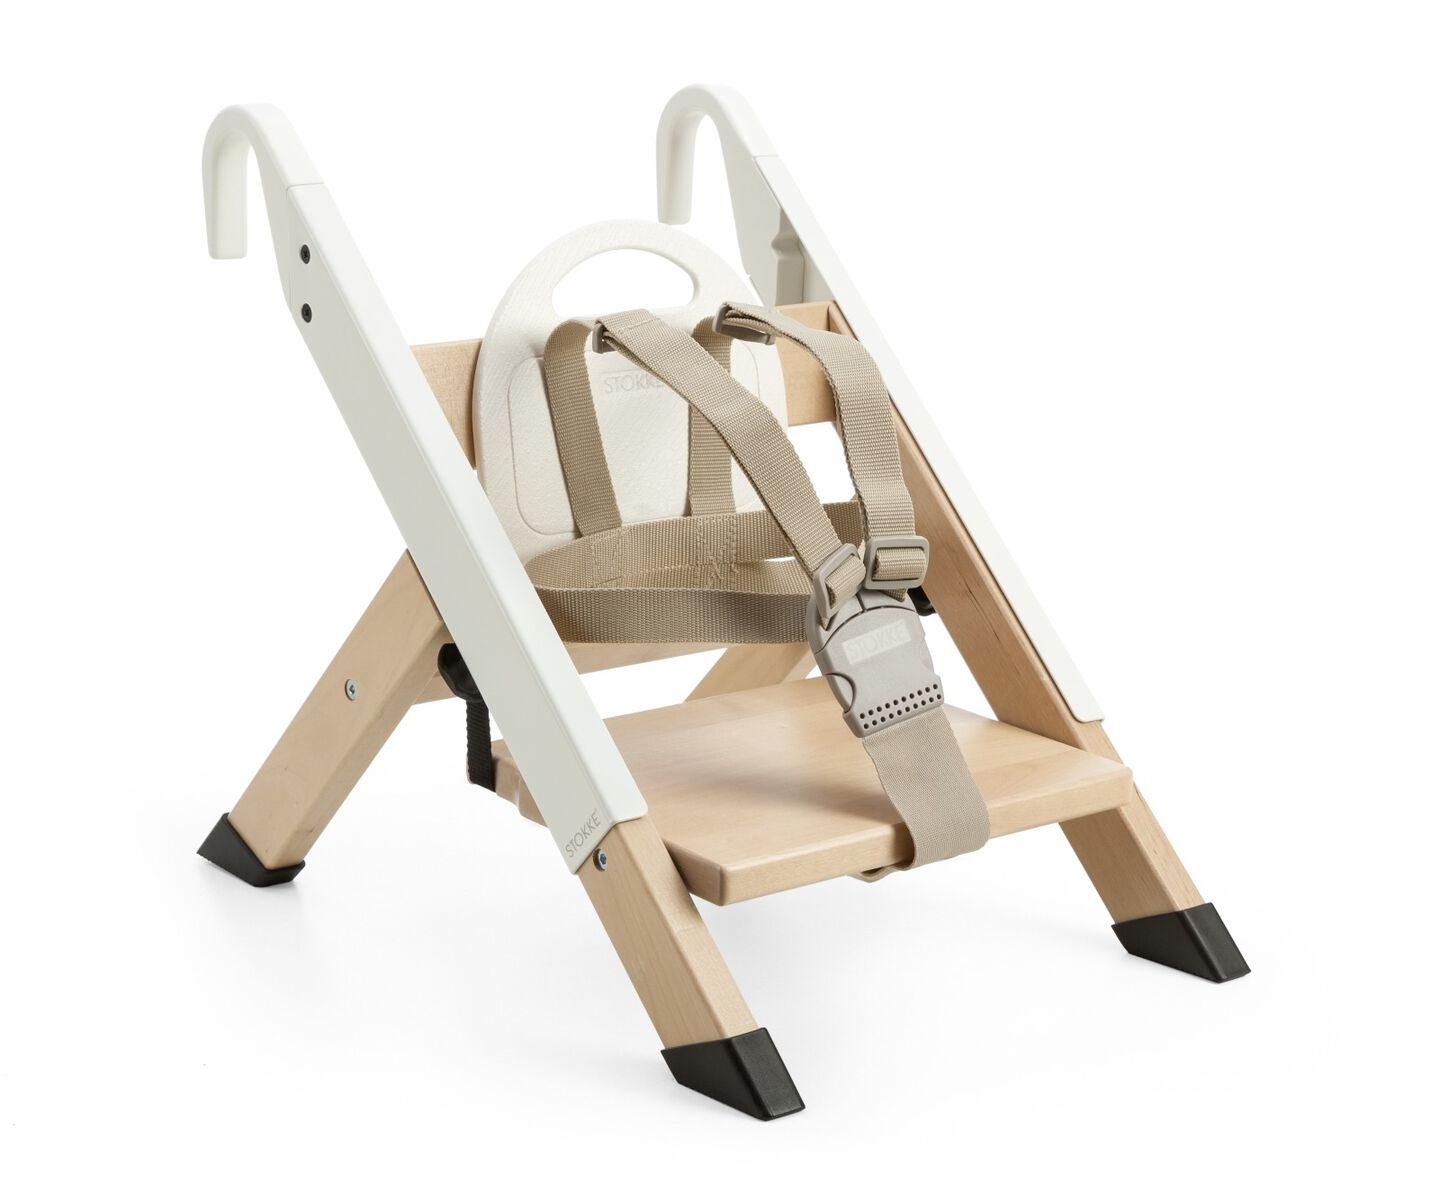 Portable child seat. White. Accessorised with legs for placing on the floor